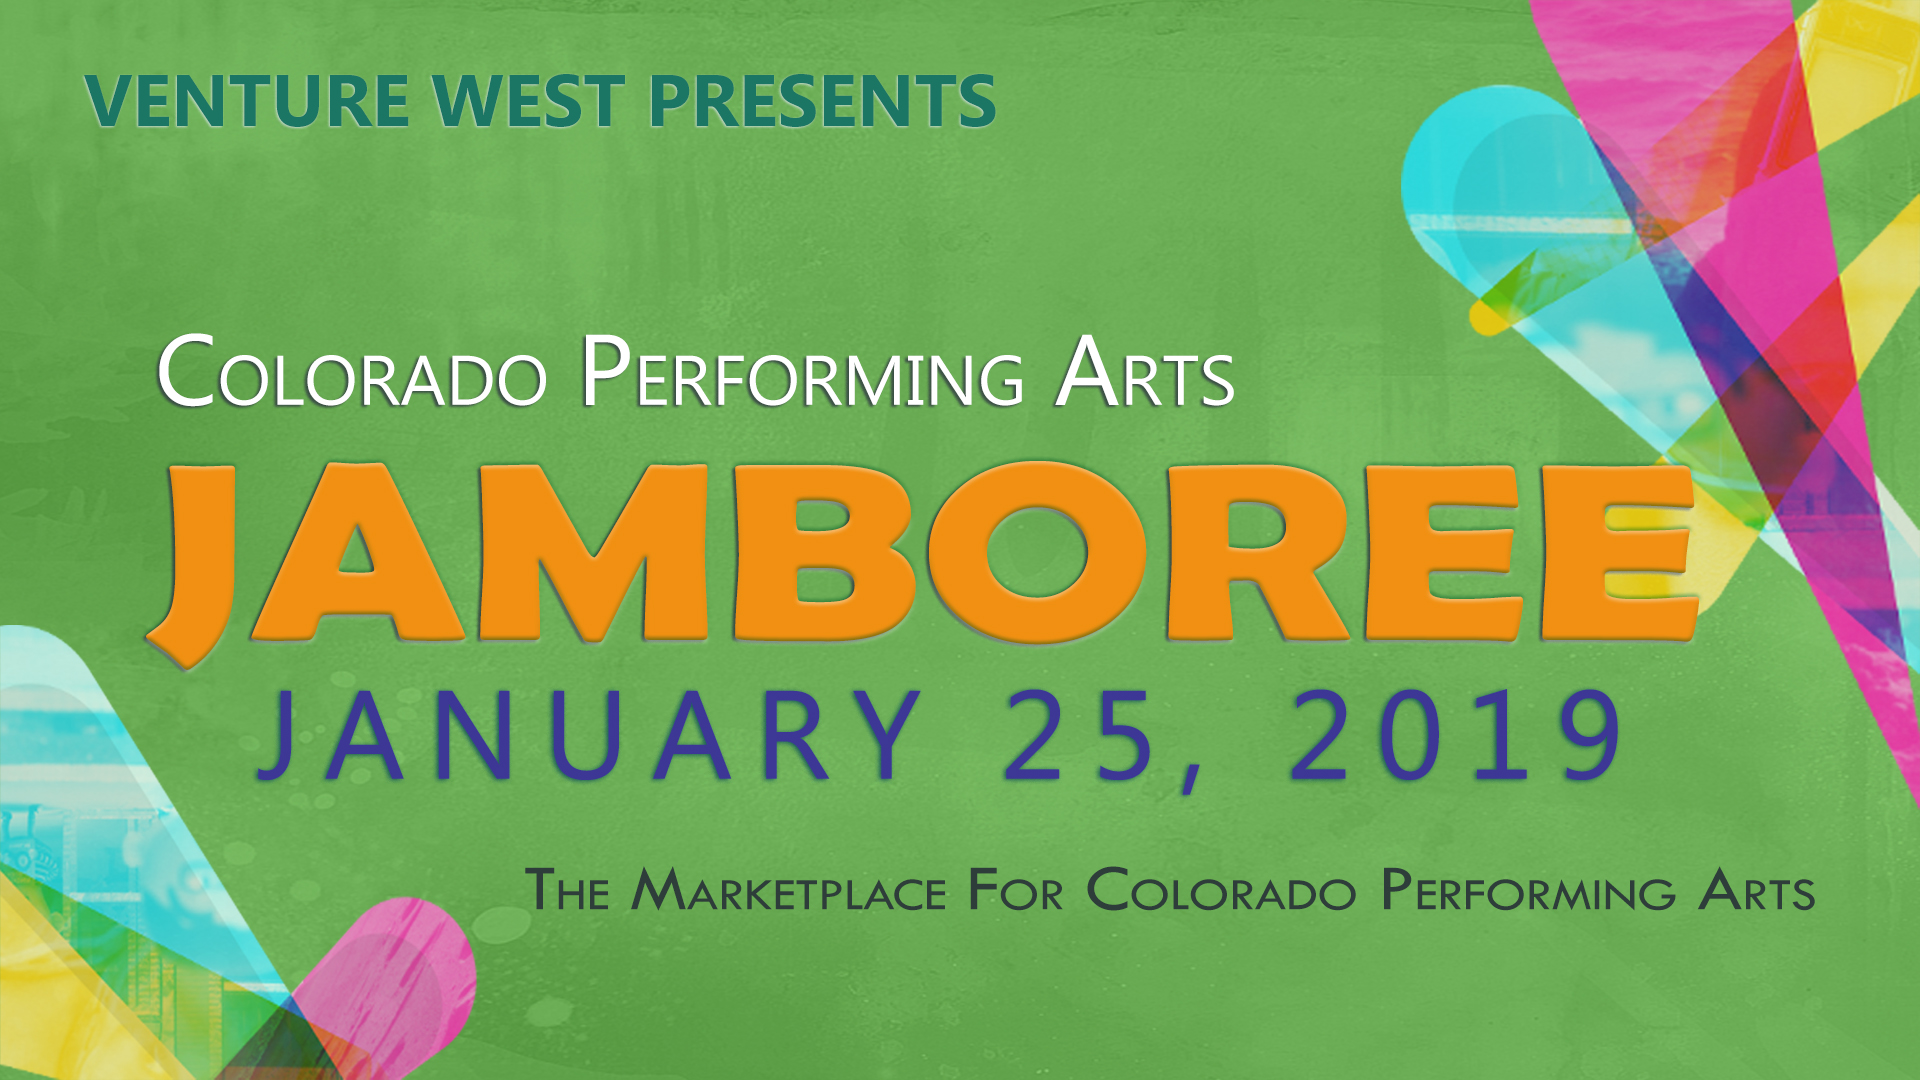 TALENT NEEDED: Last Call: Colorado Performing Arts Jamboree is January 25, 2019